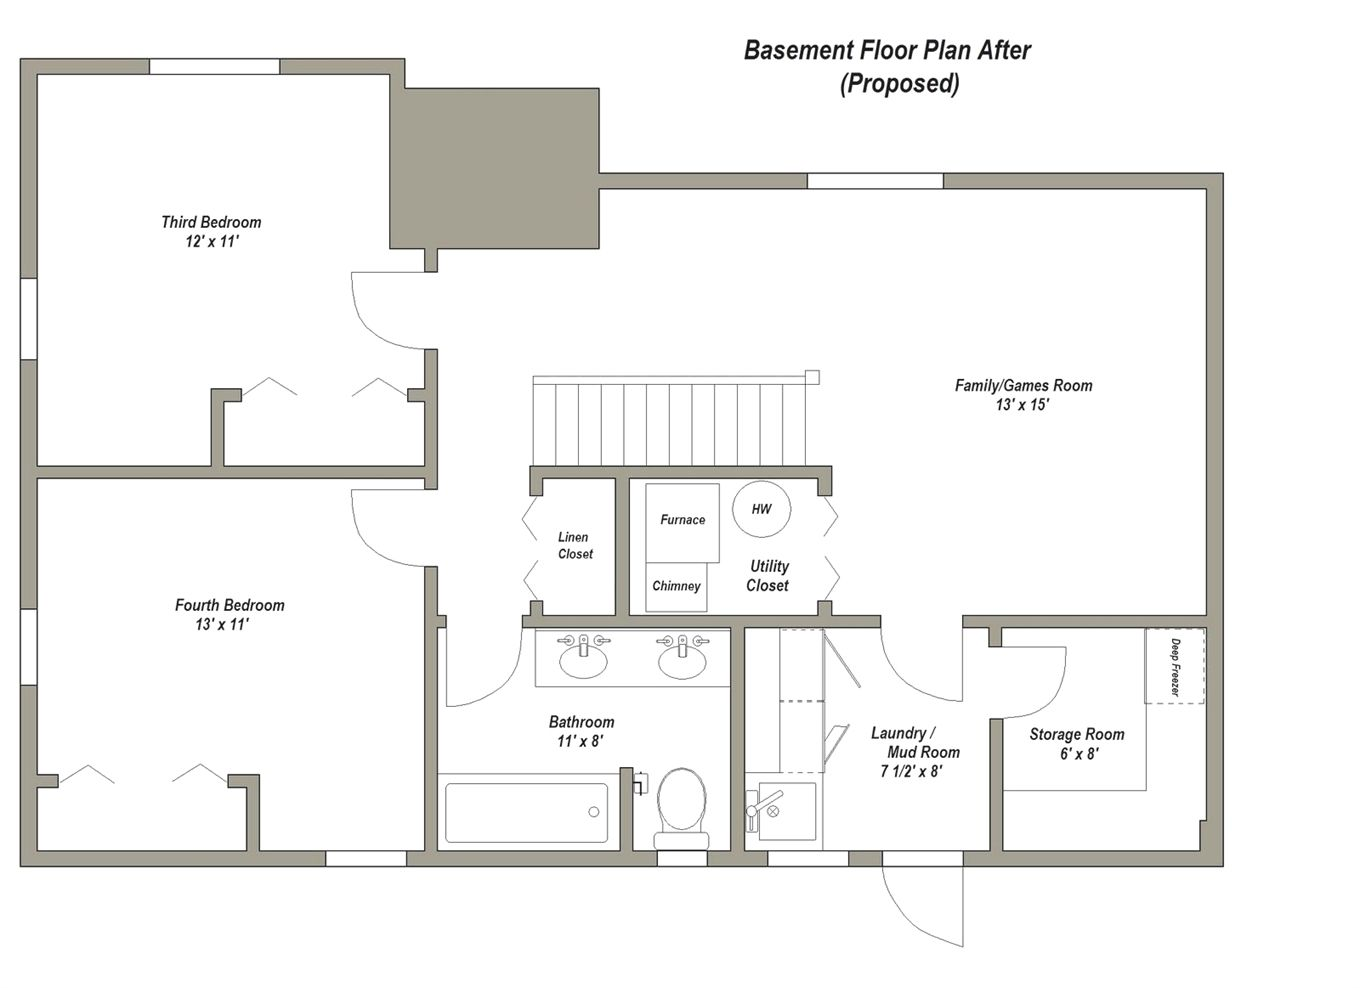 Basements Remodel Floor Plan 28x40 Basement Floor Plan After Proposed Basementplans Basement Floor Plans Basement Layout Floor Remodel